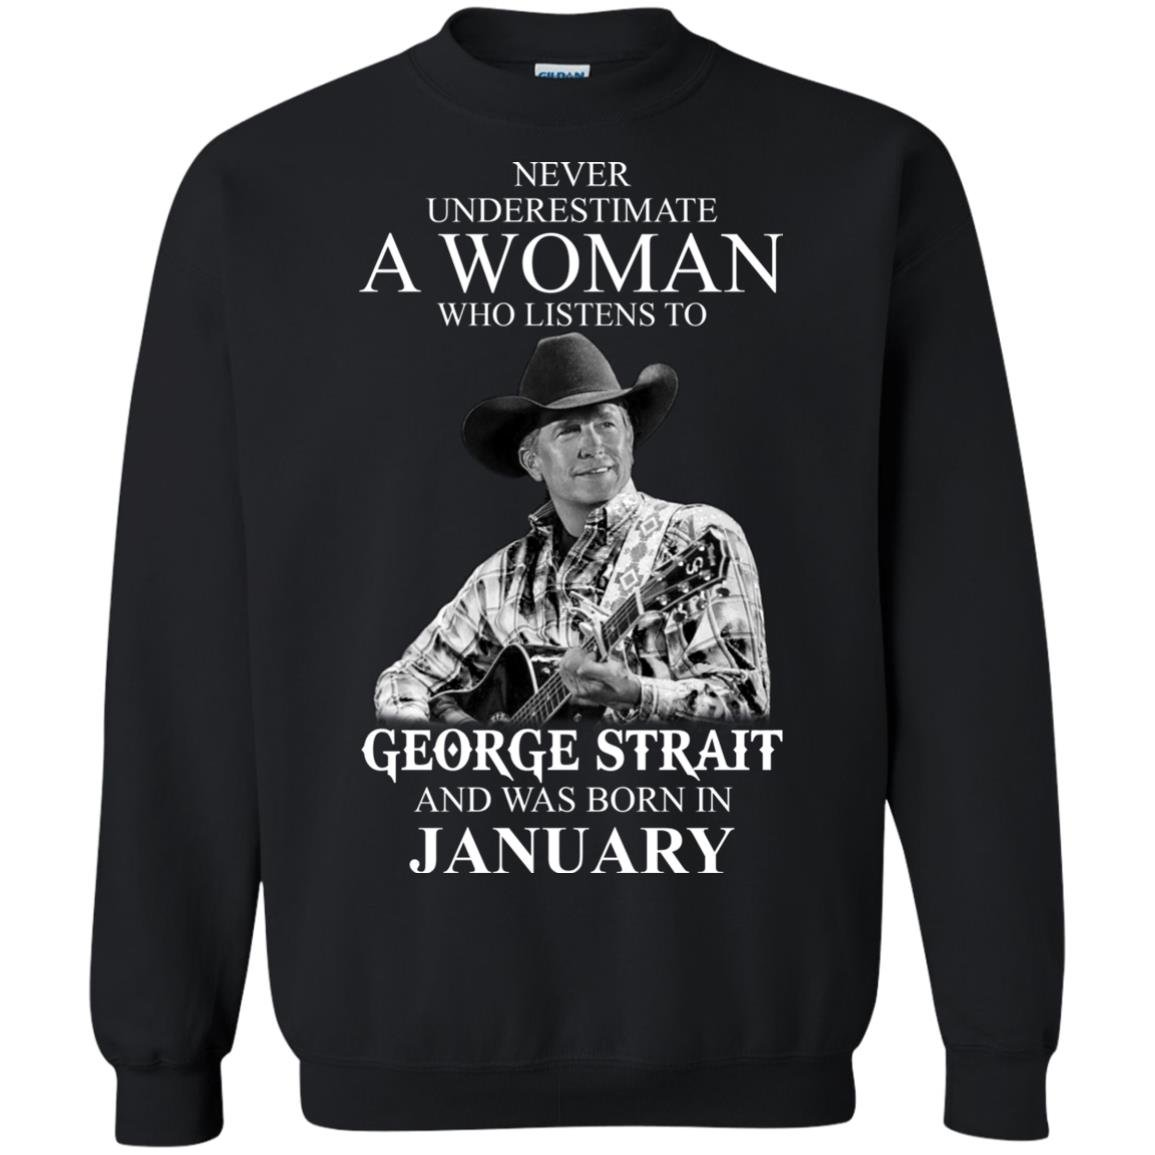 image 464 - Never Underestimate A Woman Who Listens To George Strait And Was Born In January shirt